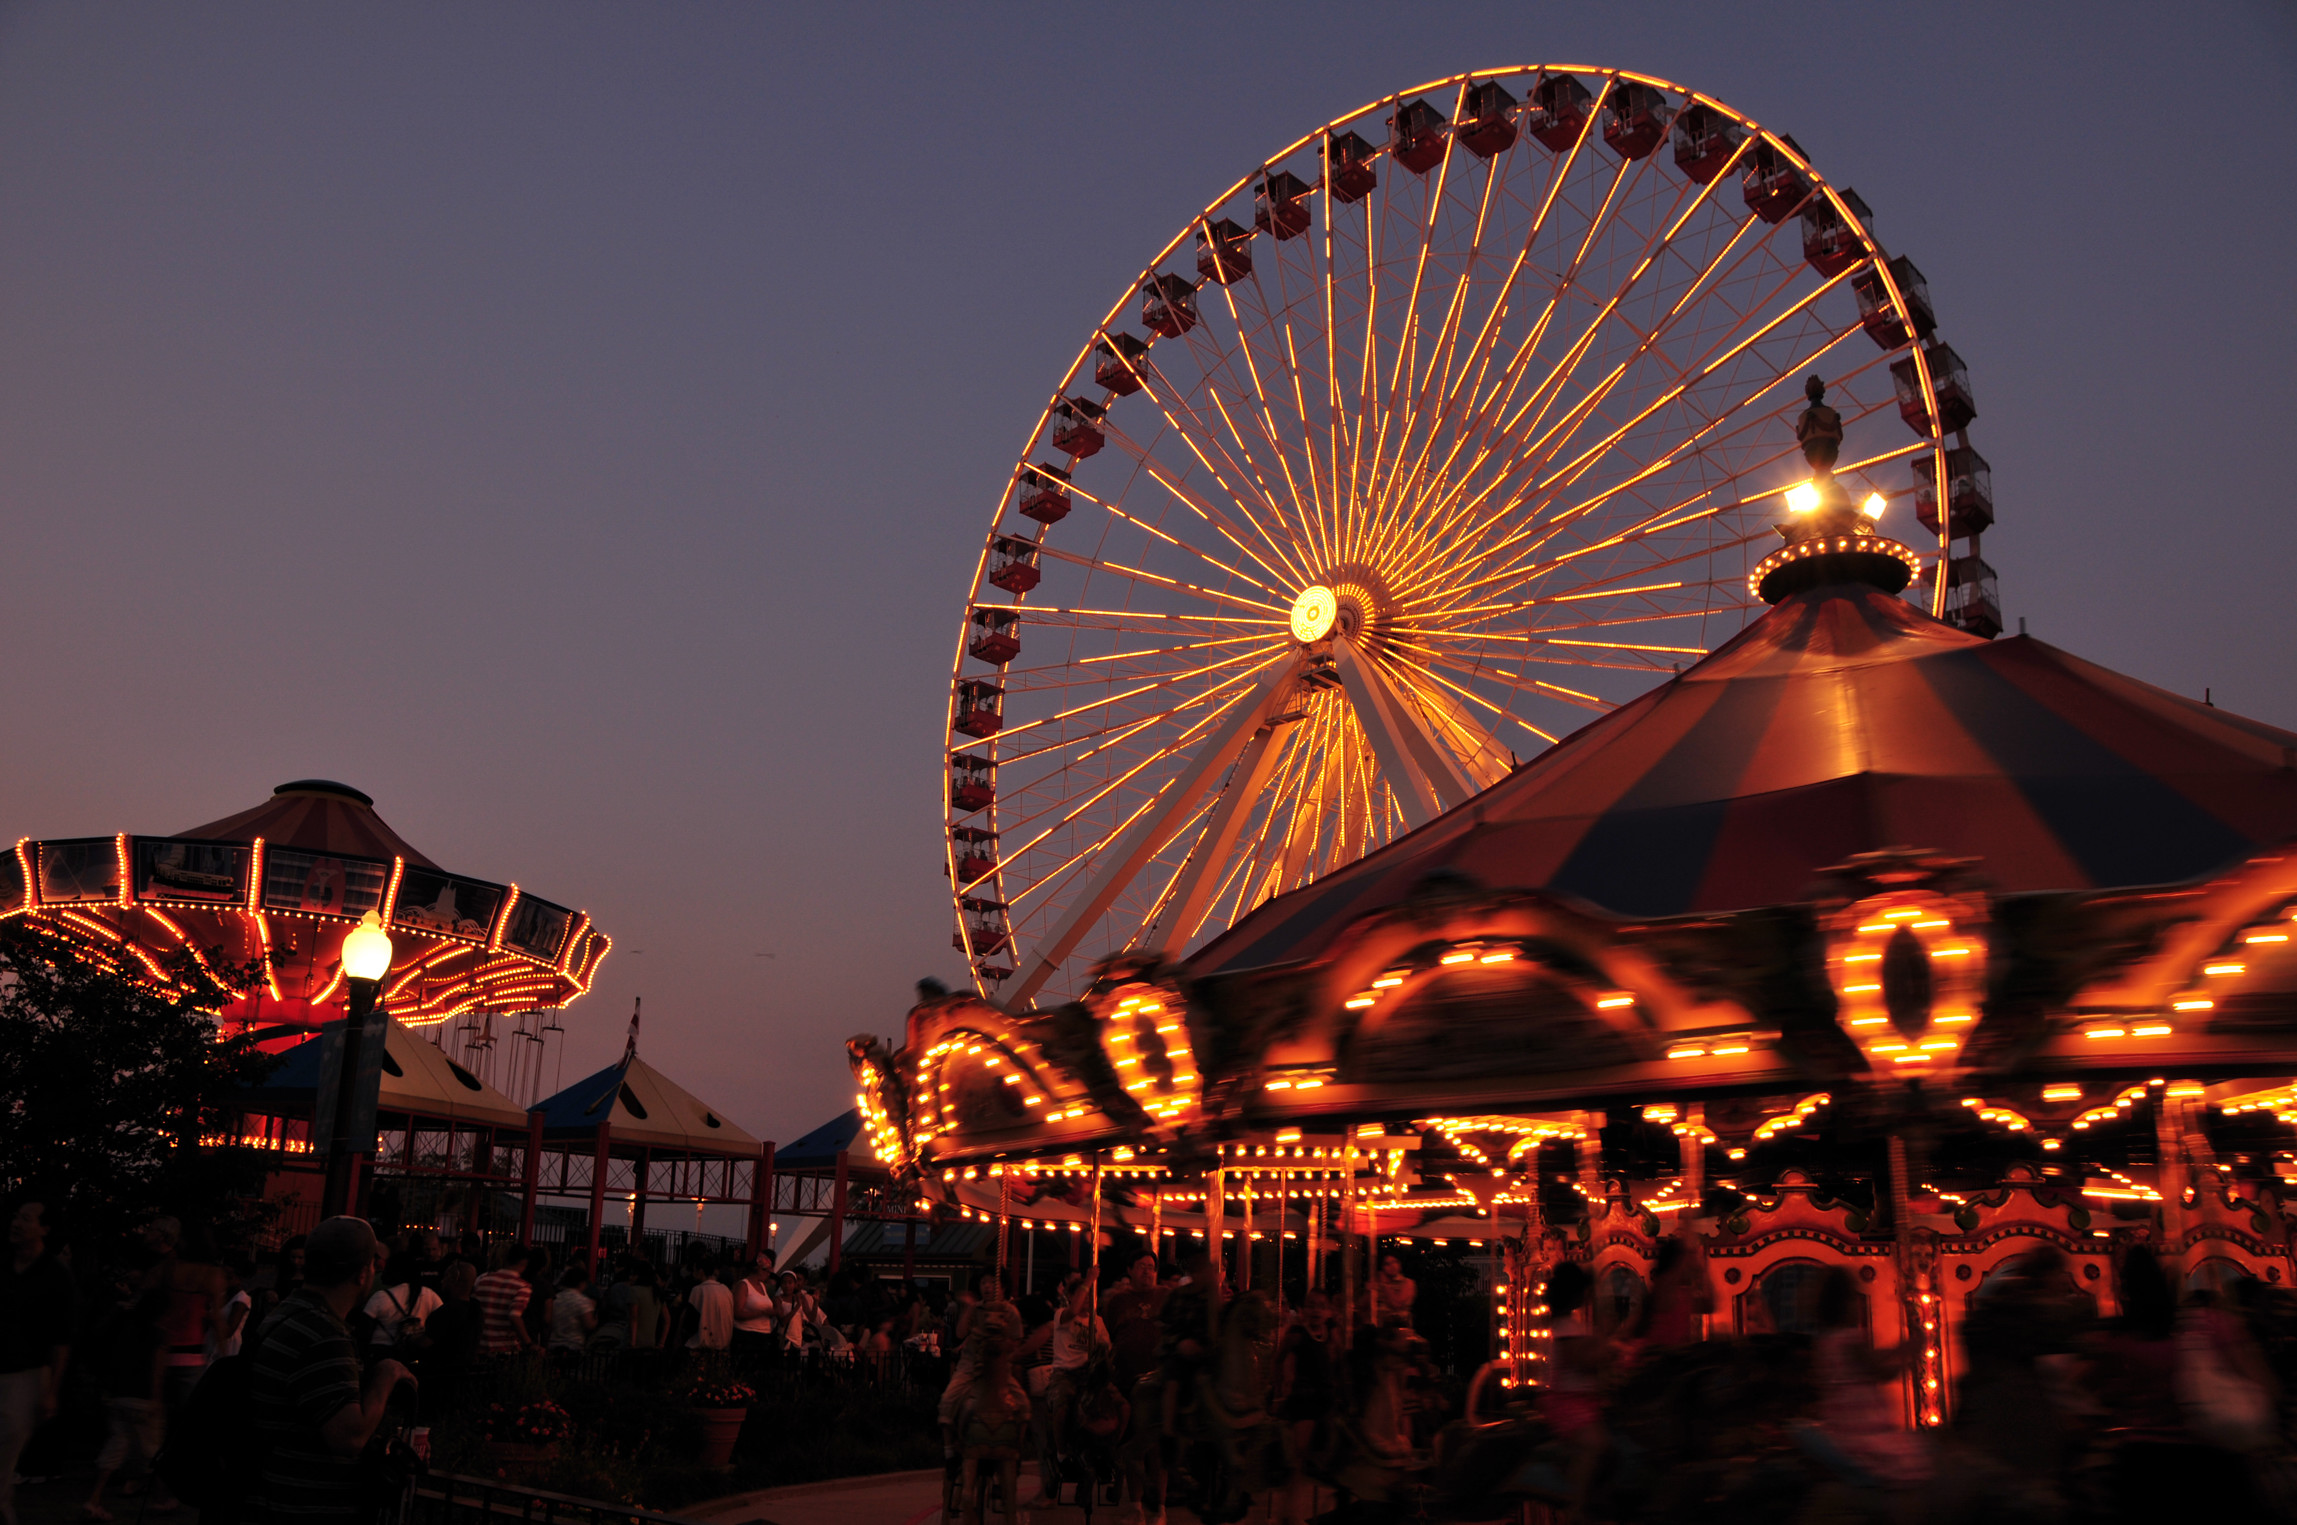 File:Chicago - Navy Pier 3 in 1 (2720626841).jpg - Wikimedia Commons